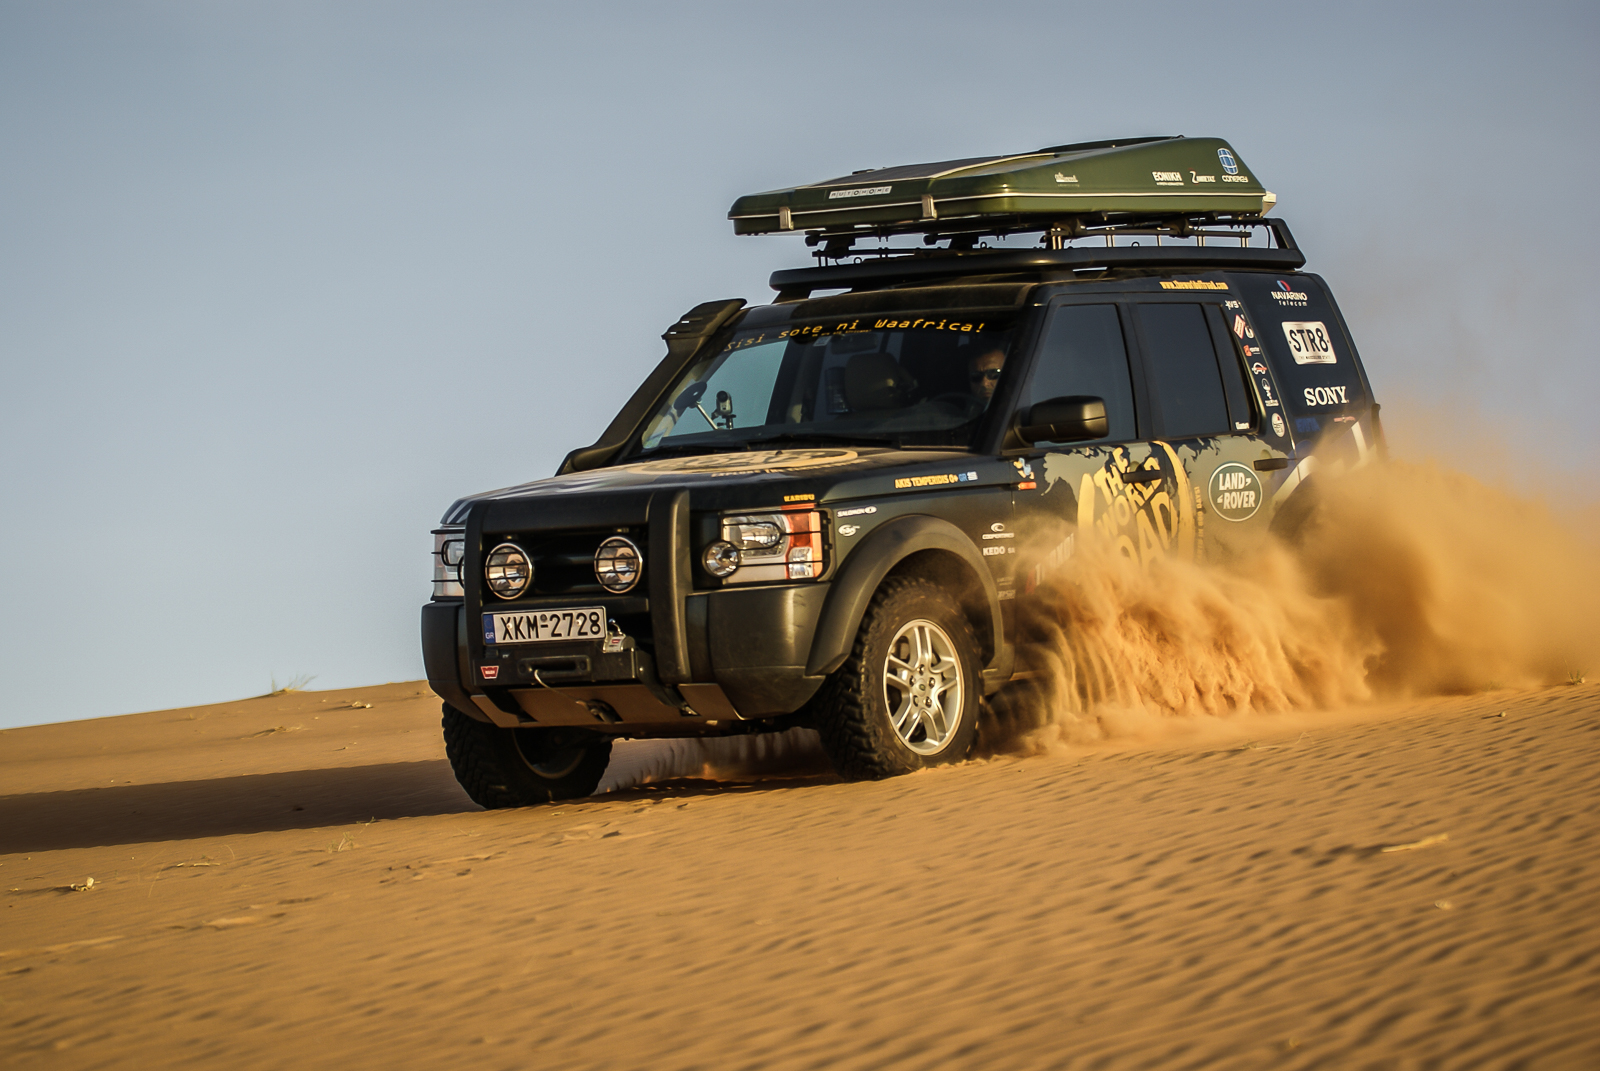 Hard driving on the dunes around Chinguetti, Mauritania